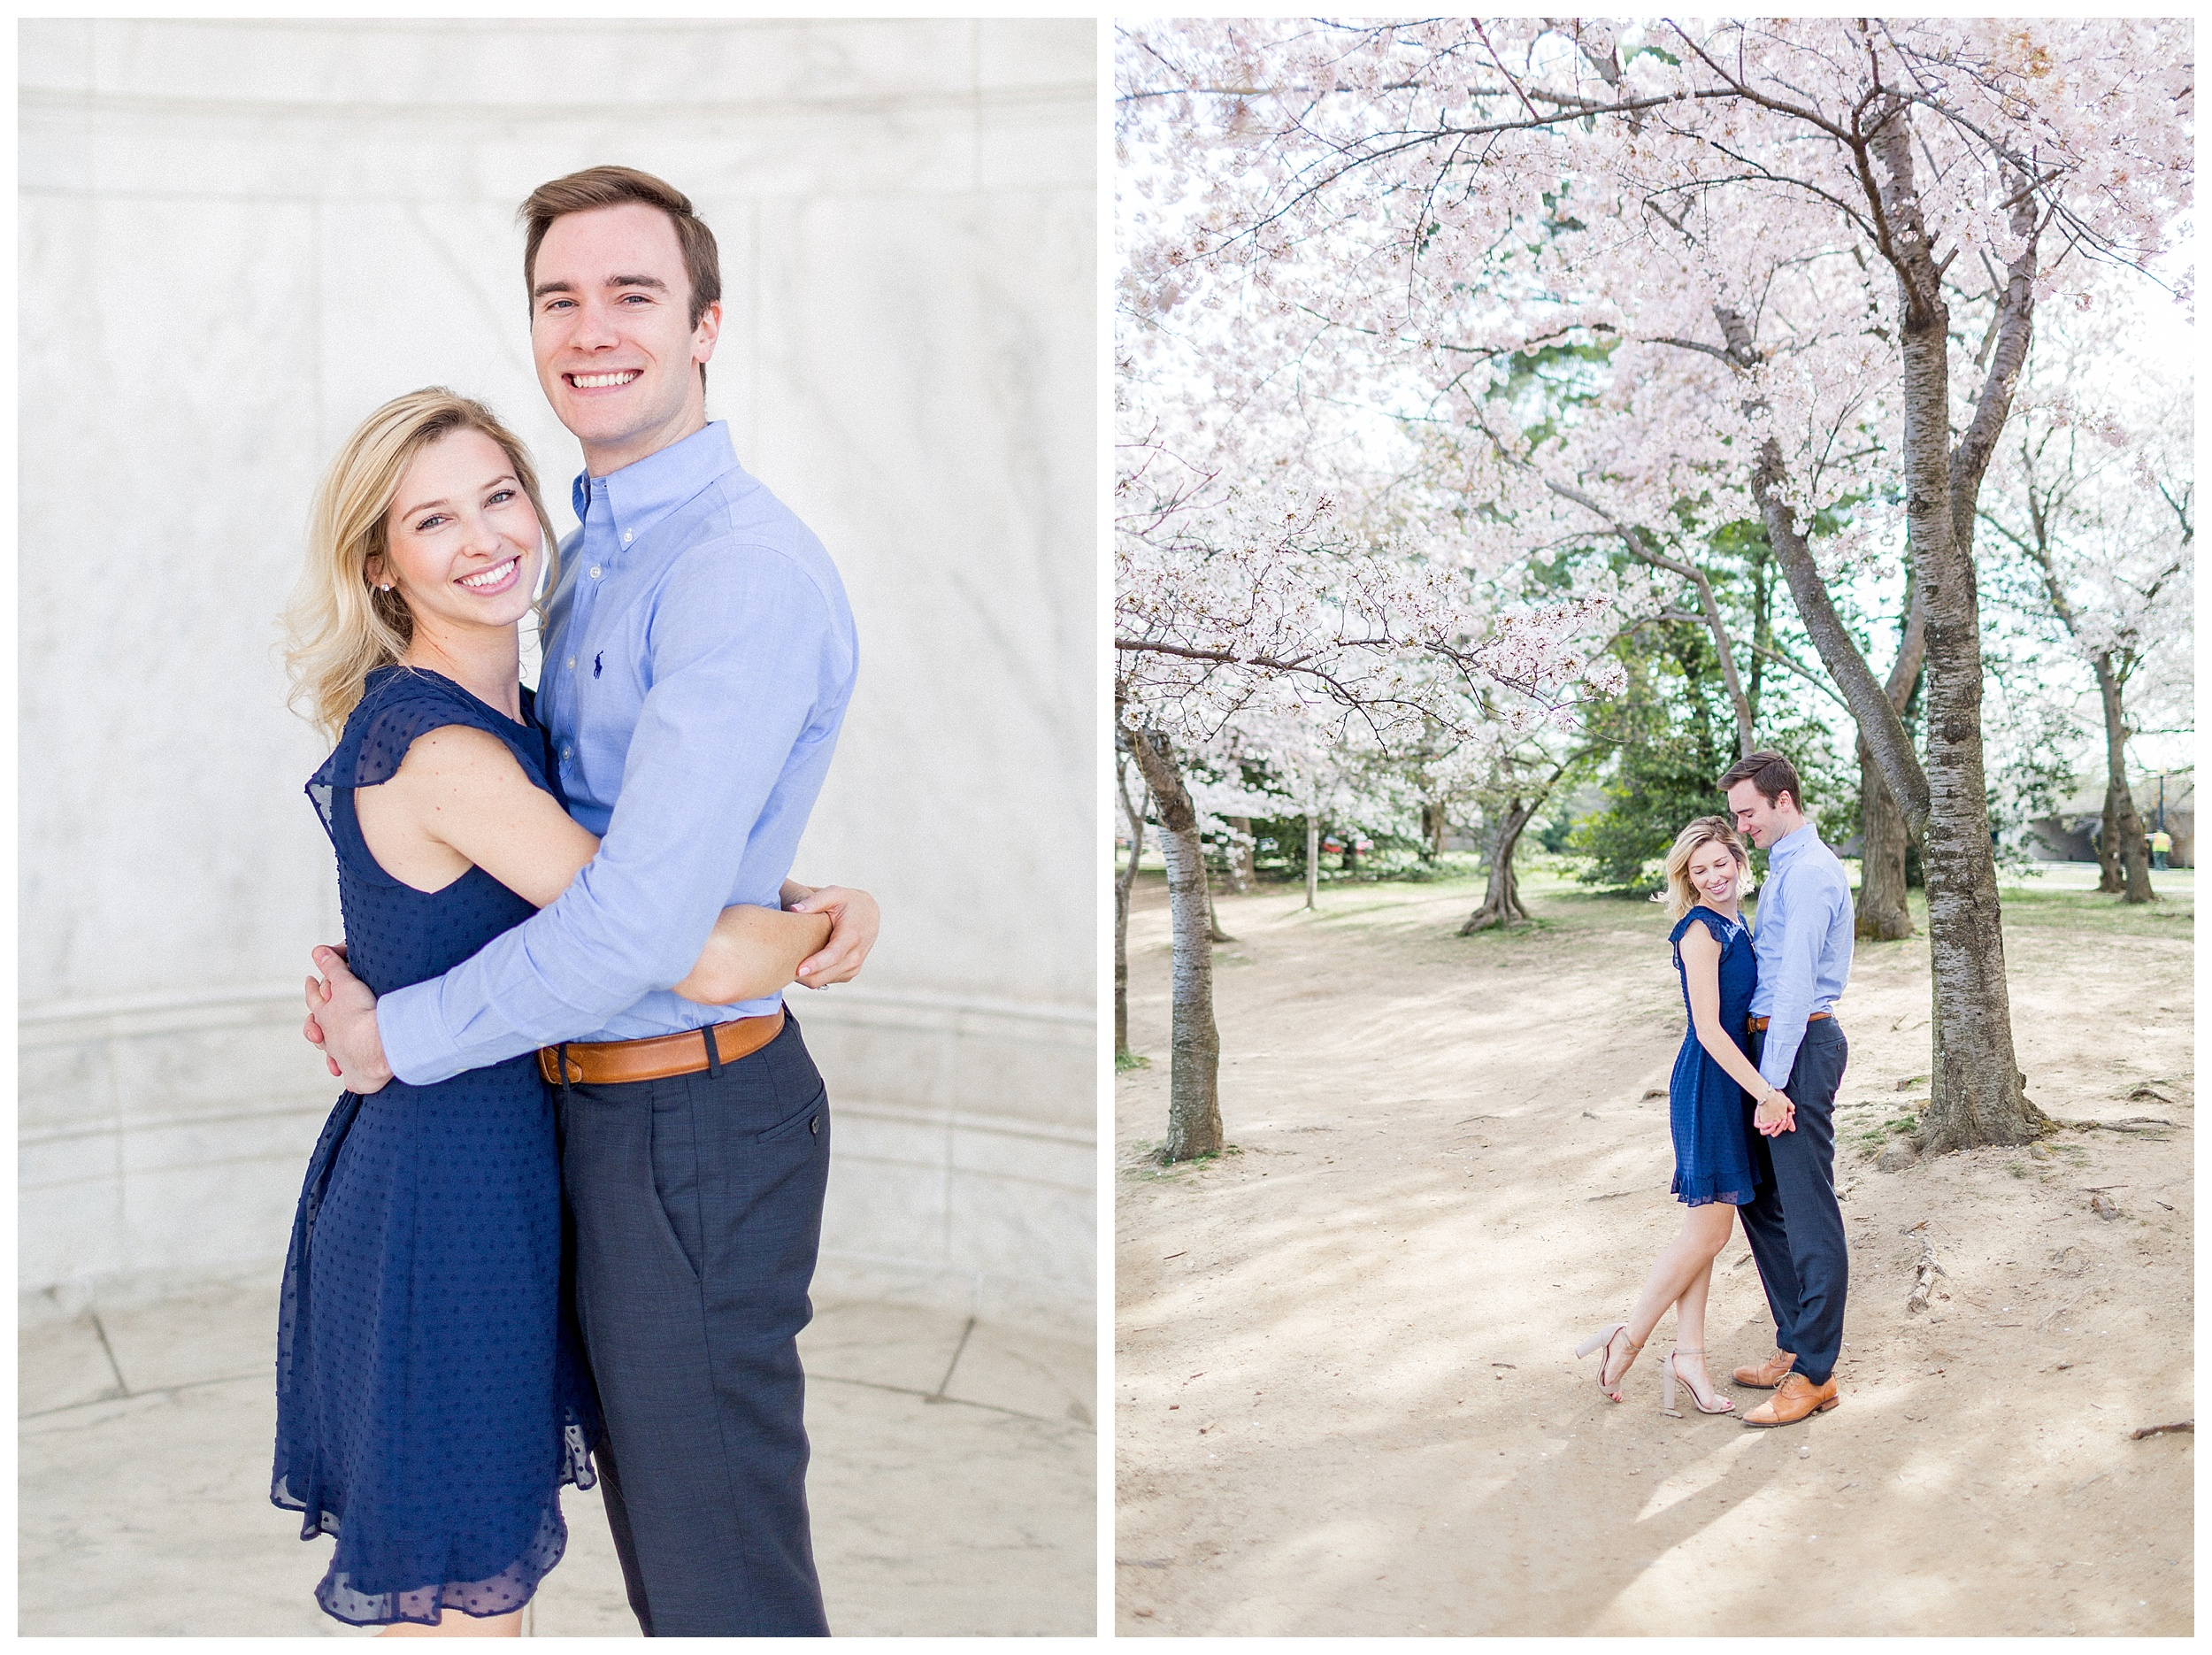 District of Columbia Cherry Blossom Engagement Session_0002.jpg